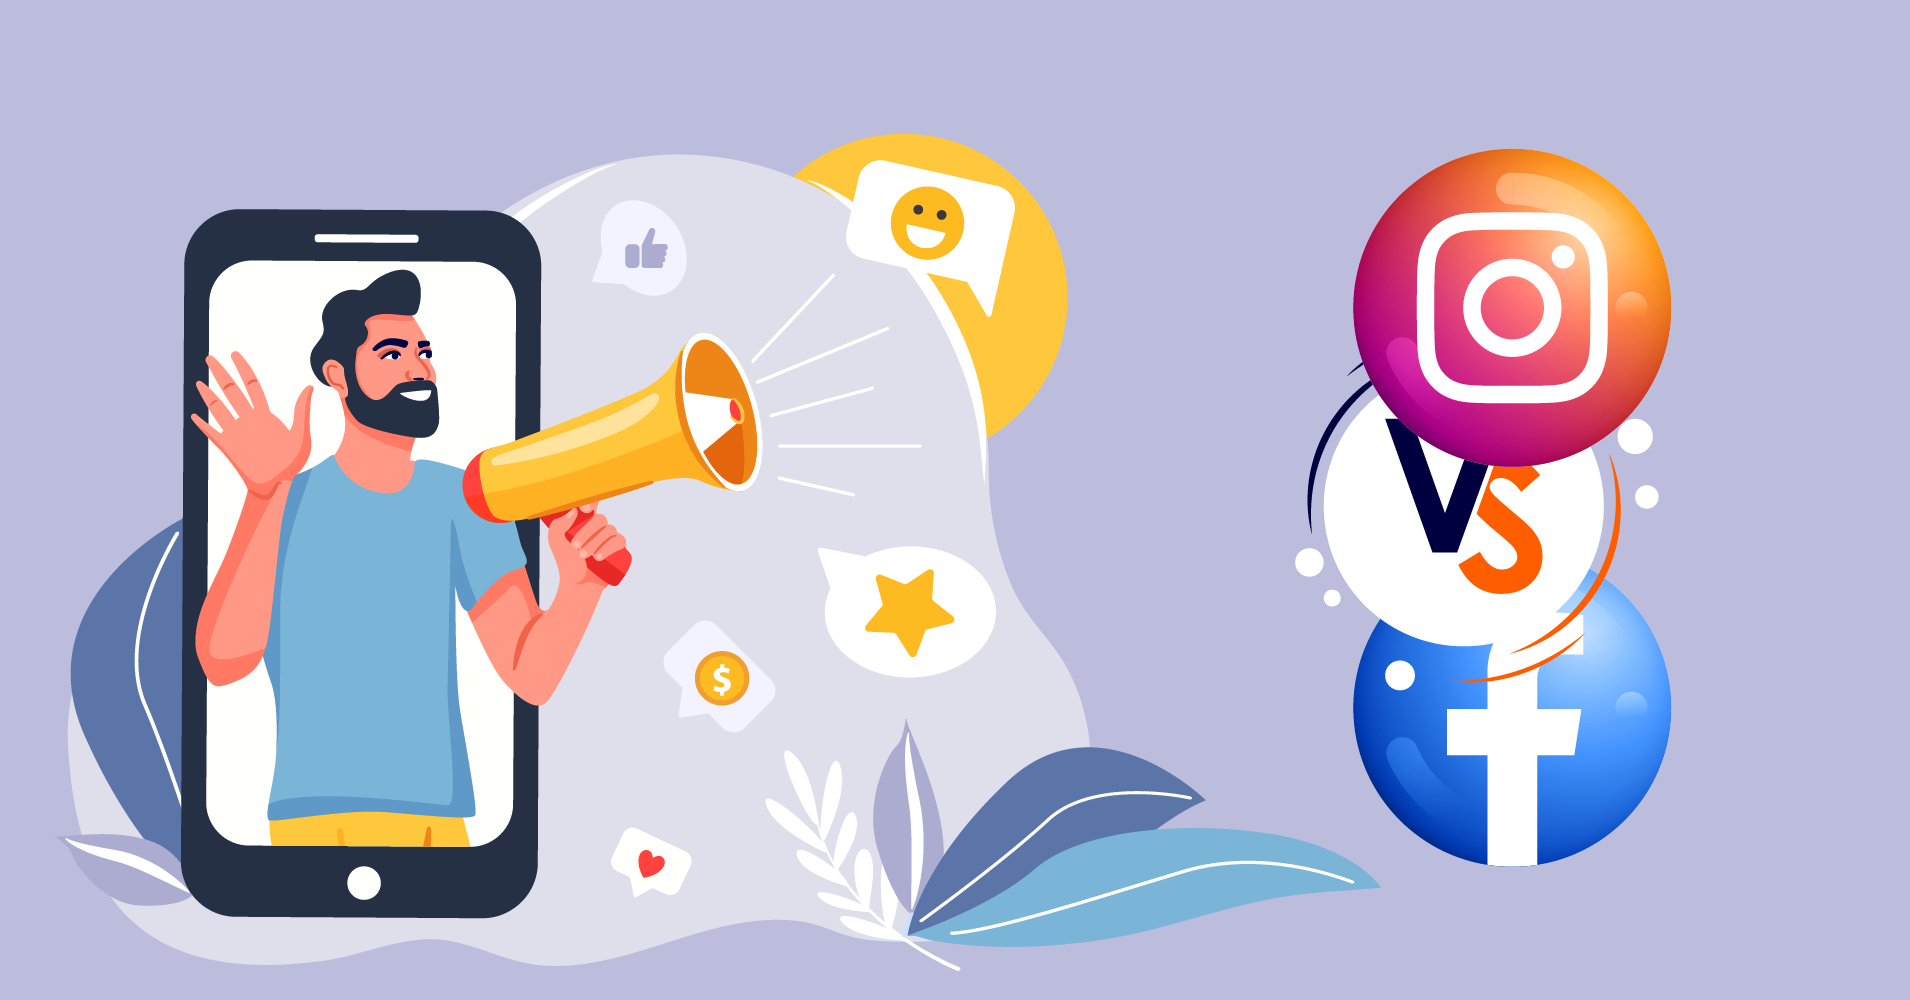 Instagram vs Facebook marketing differences and similarities